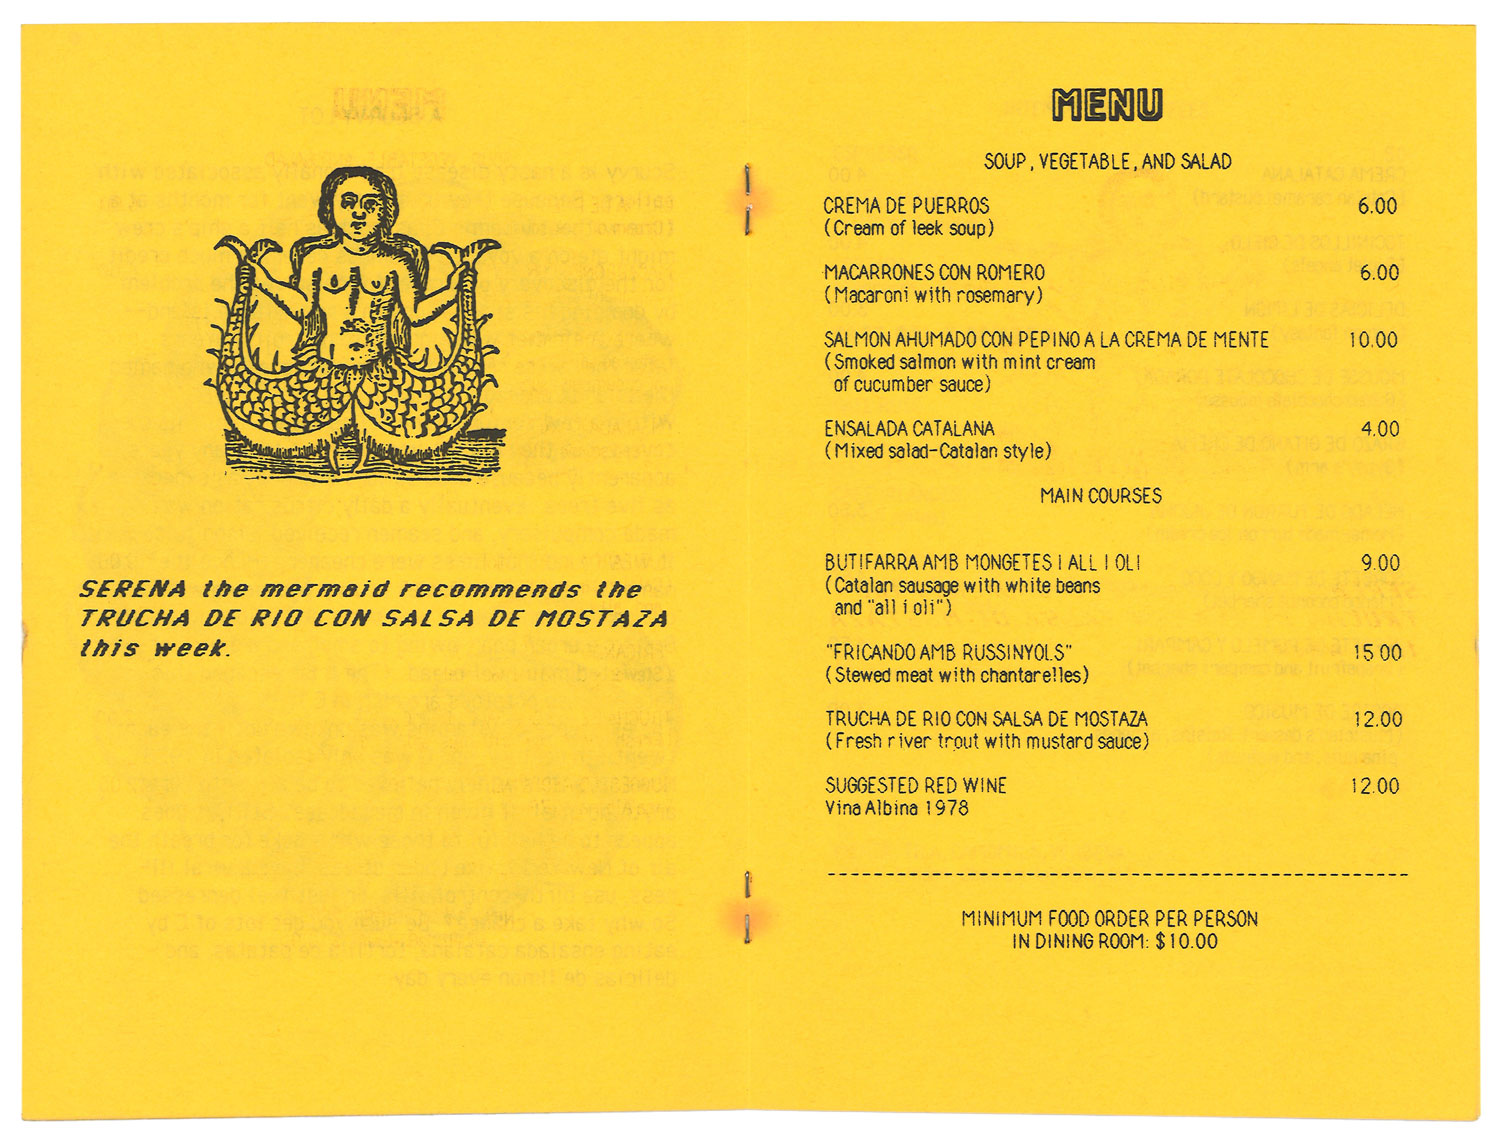 menu-may-june-1985